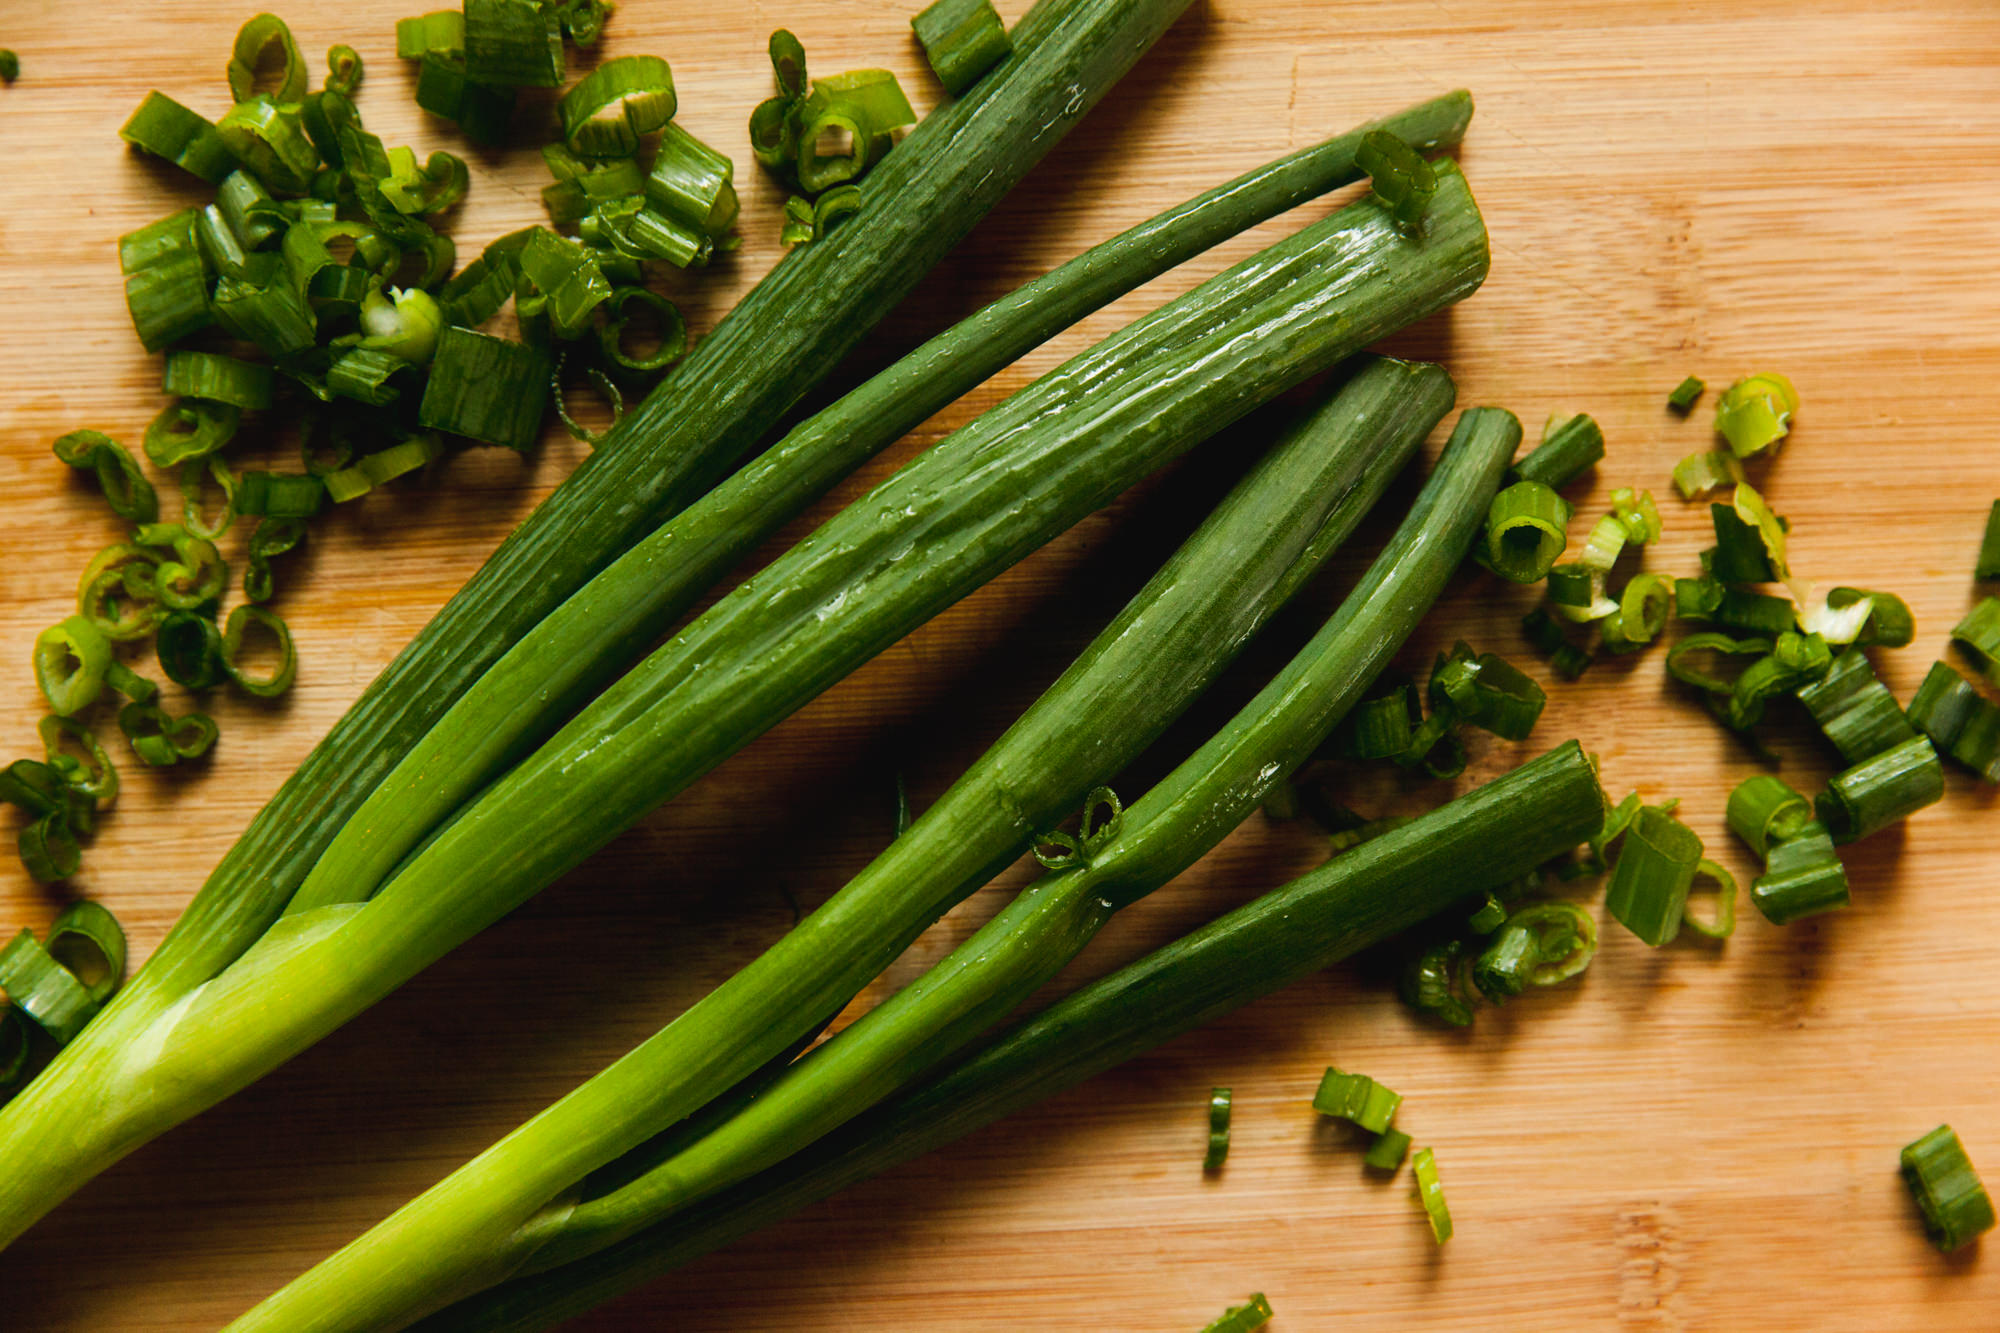 Green onions for Chicken Salad